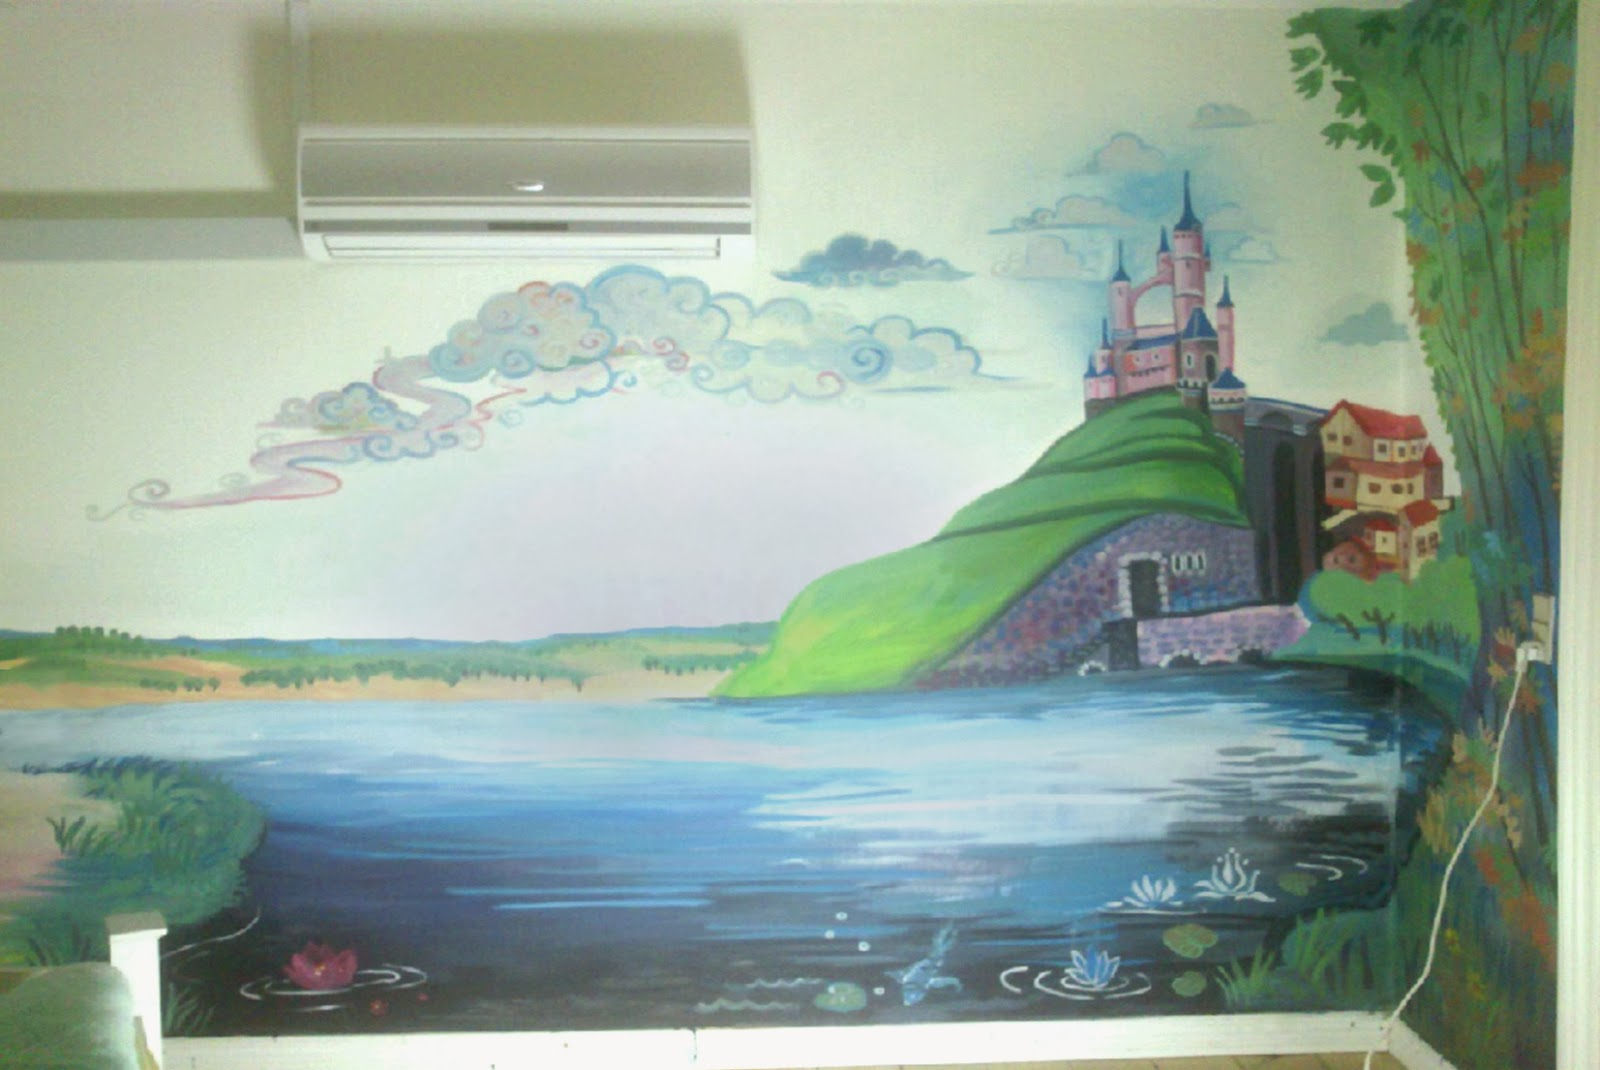 maggie murals fairytale nursery wall mural fairytale nursery wall mural this is a nursery i painted for a little girl now she has a cute little princess by her bed a magic castle on a hill